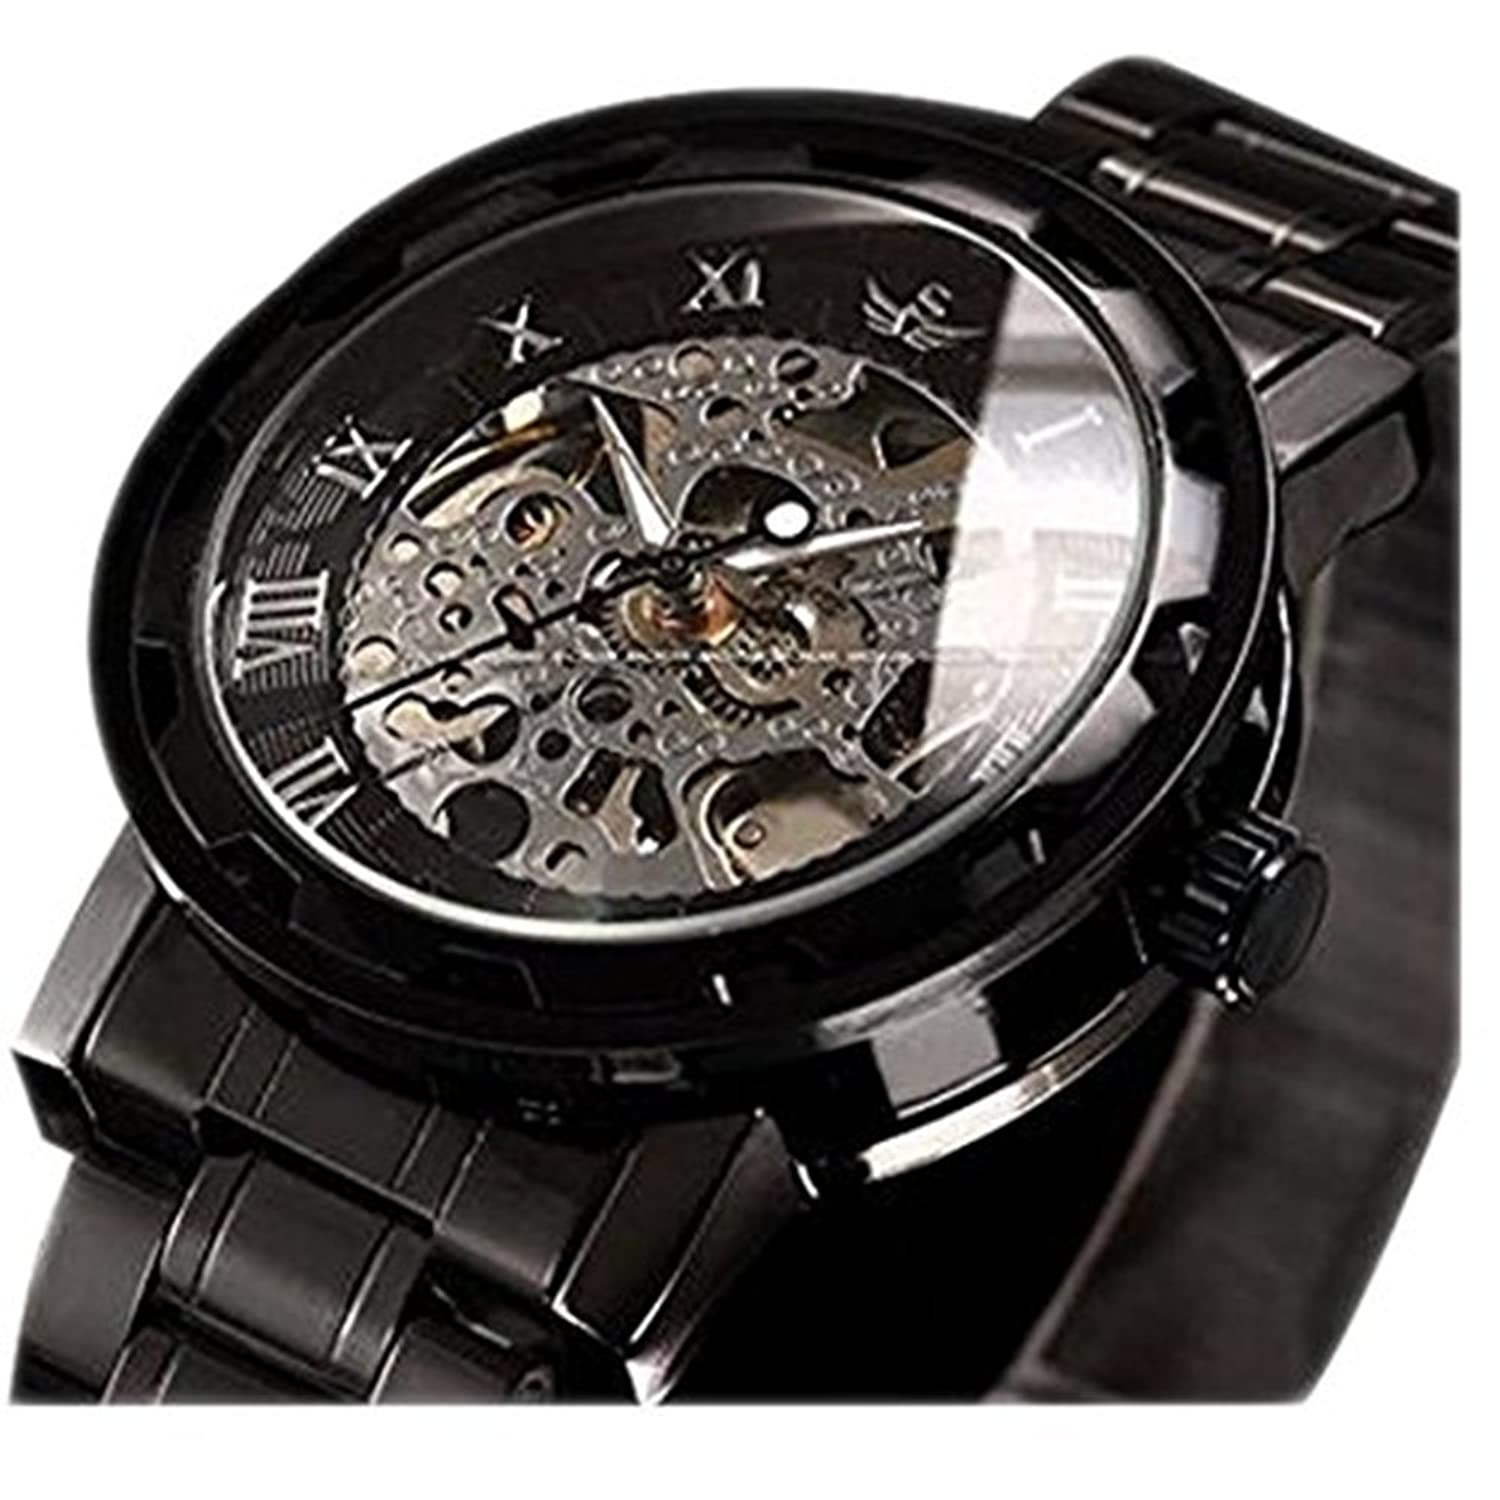 web kings murder two collection black leather classic product watch watches home